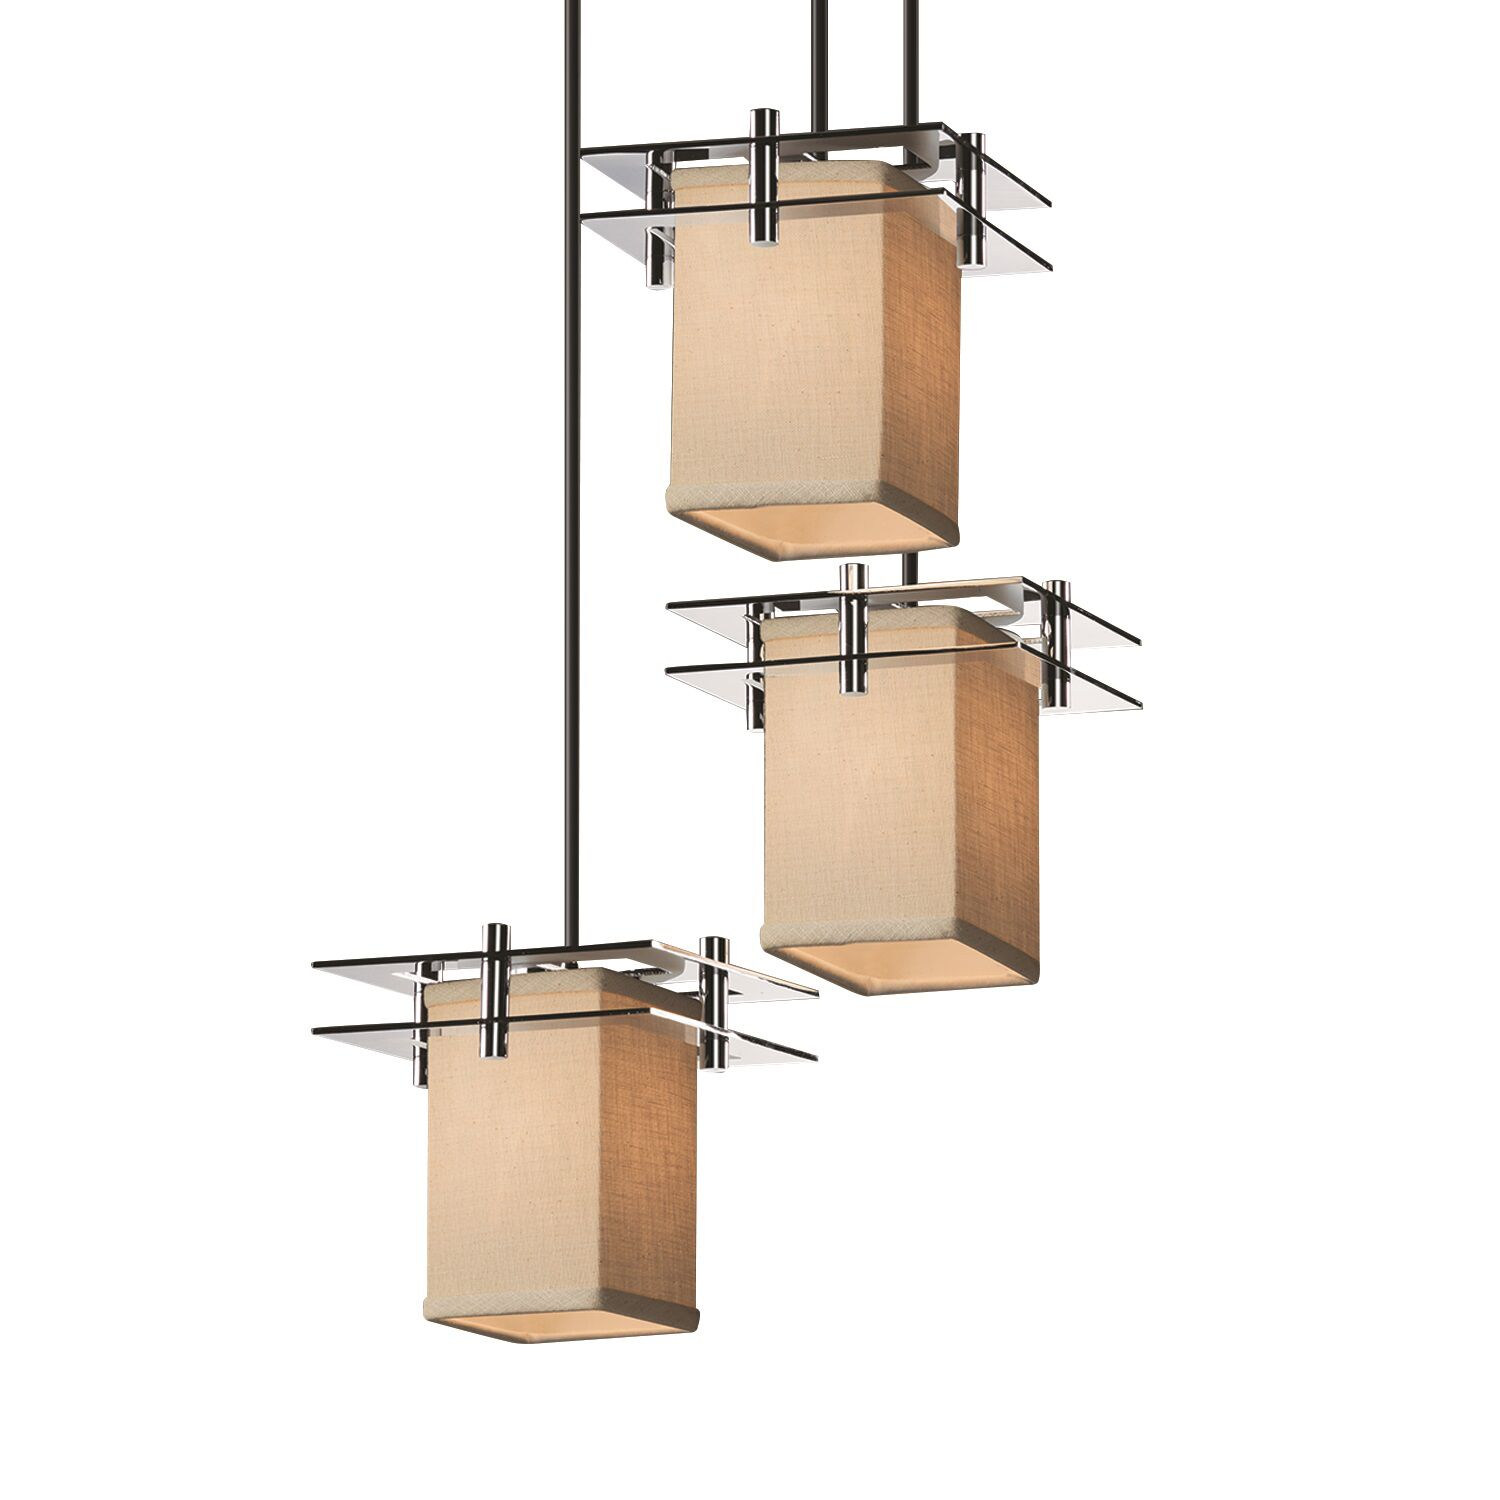 Red Hook 3 Light Pendant Finish: Brushed Nickel, Shade Color: White